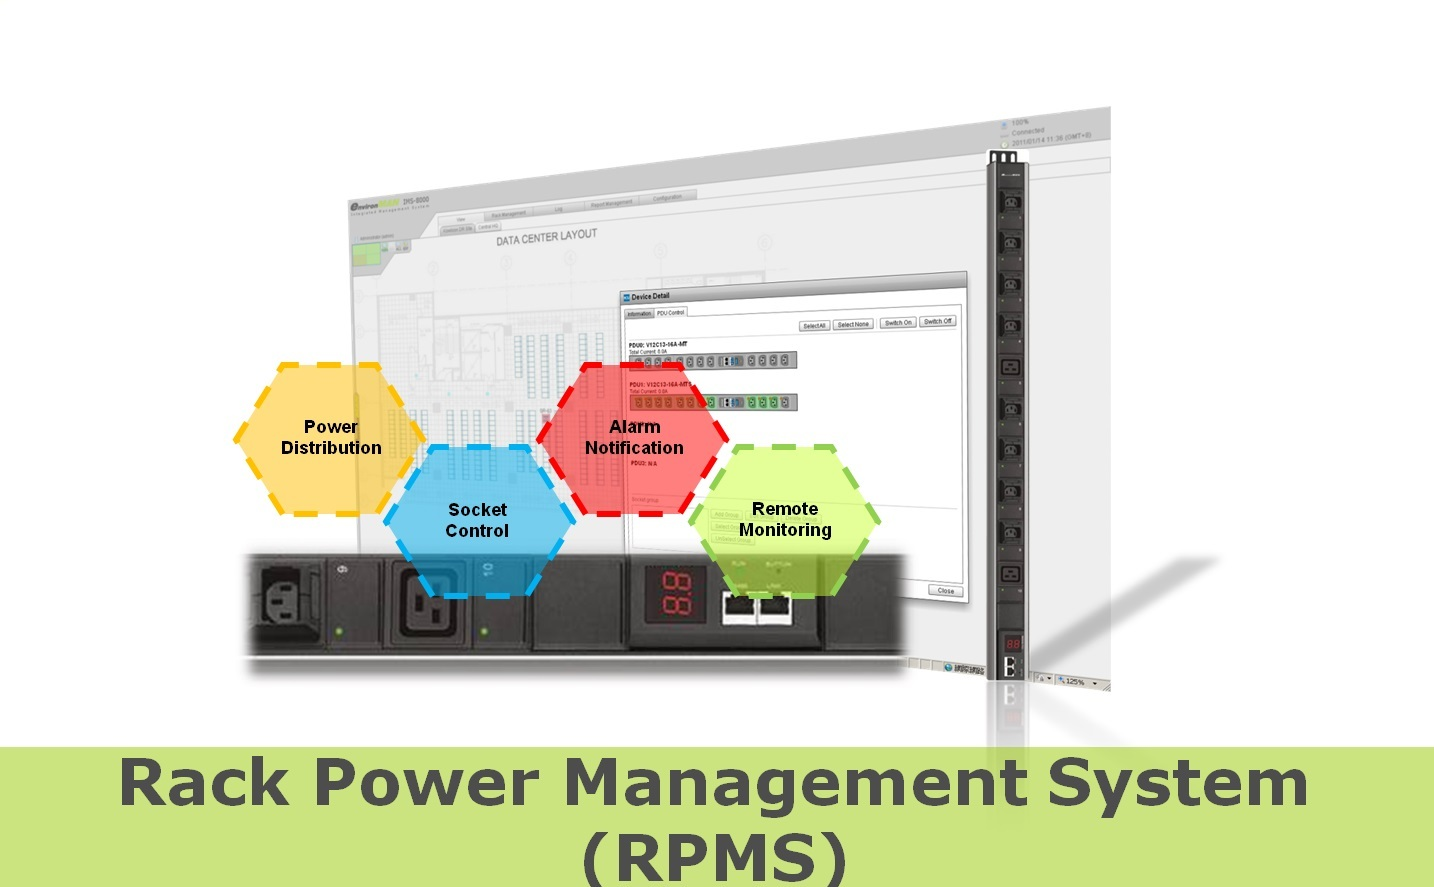 Rack Power Management Systerm